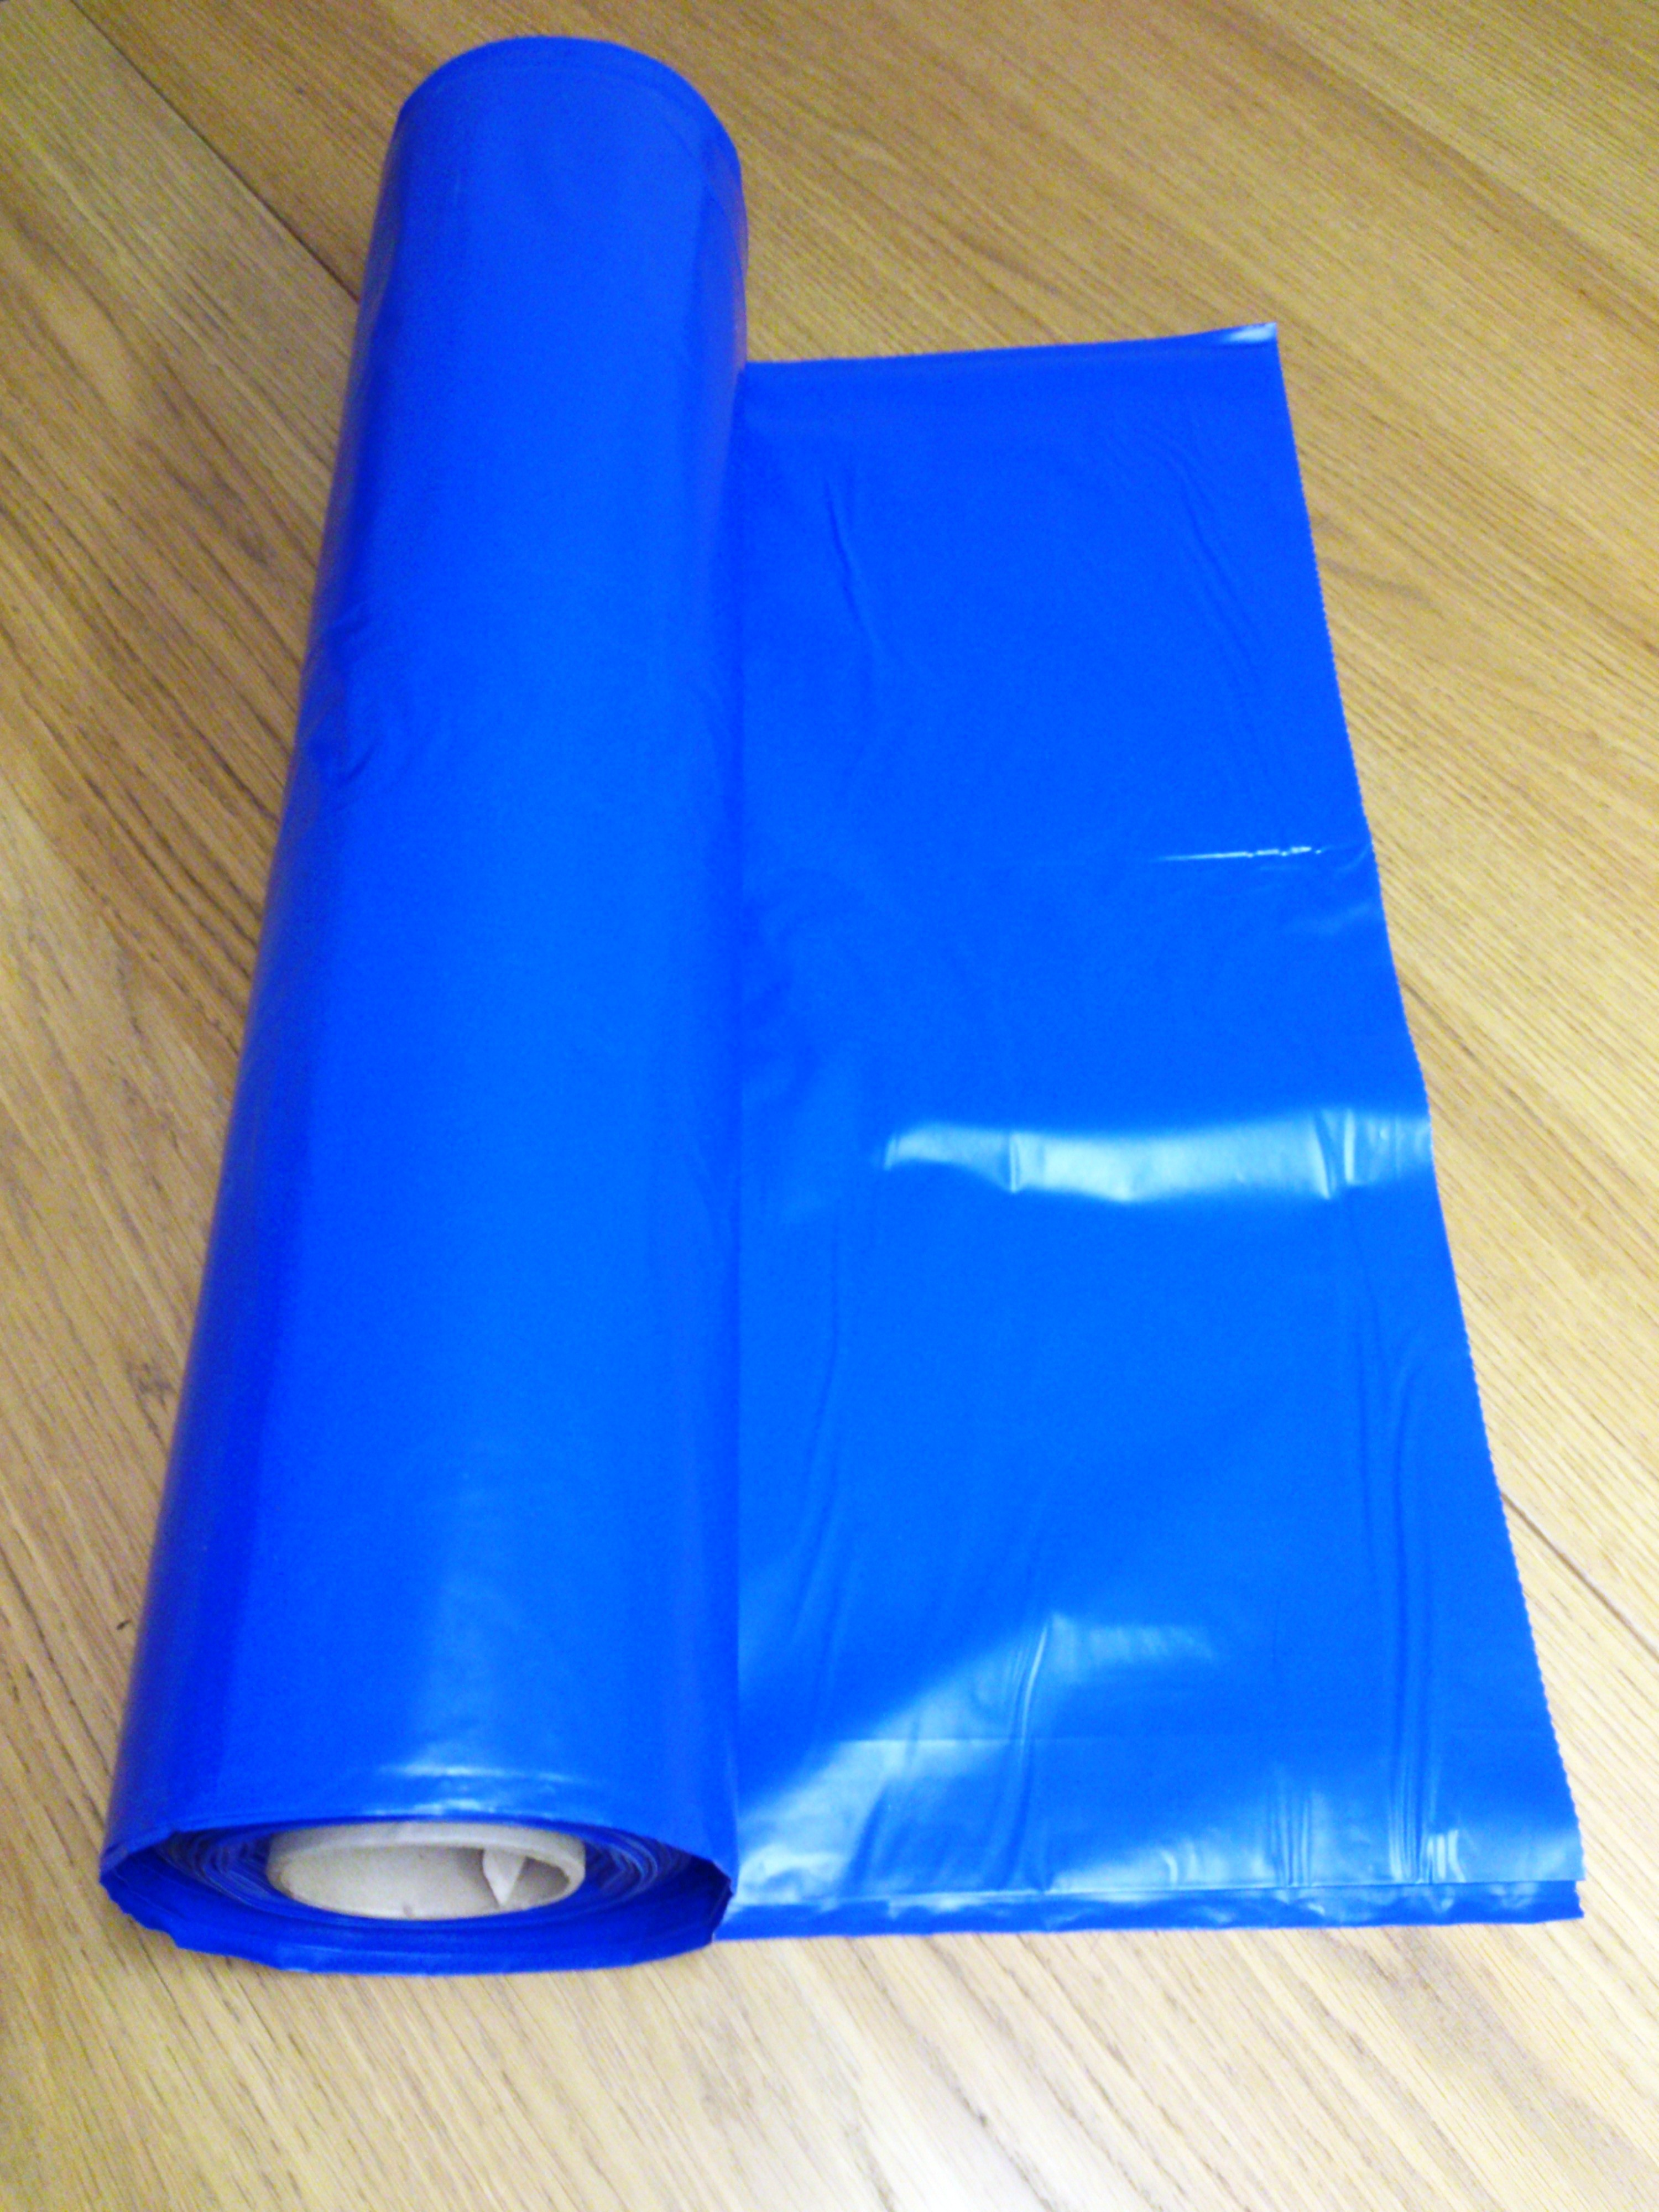 Blue Opaque Compactor Bags supplied by Kenburn